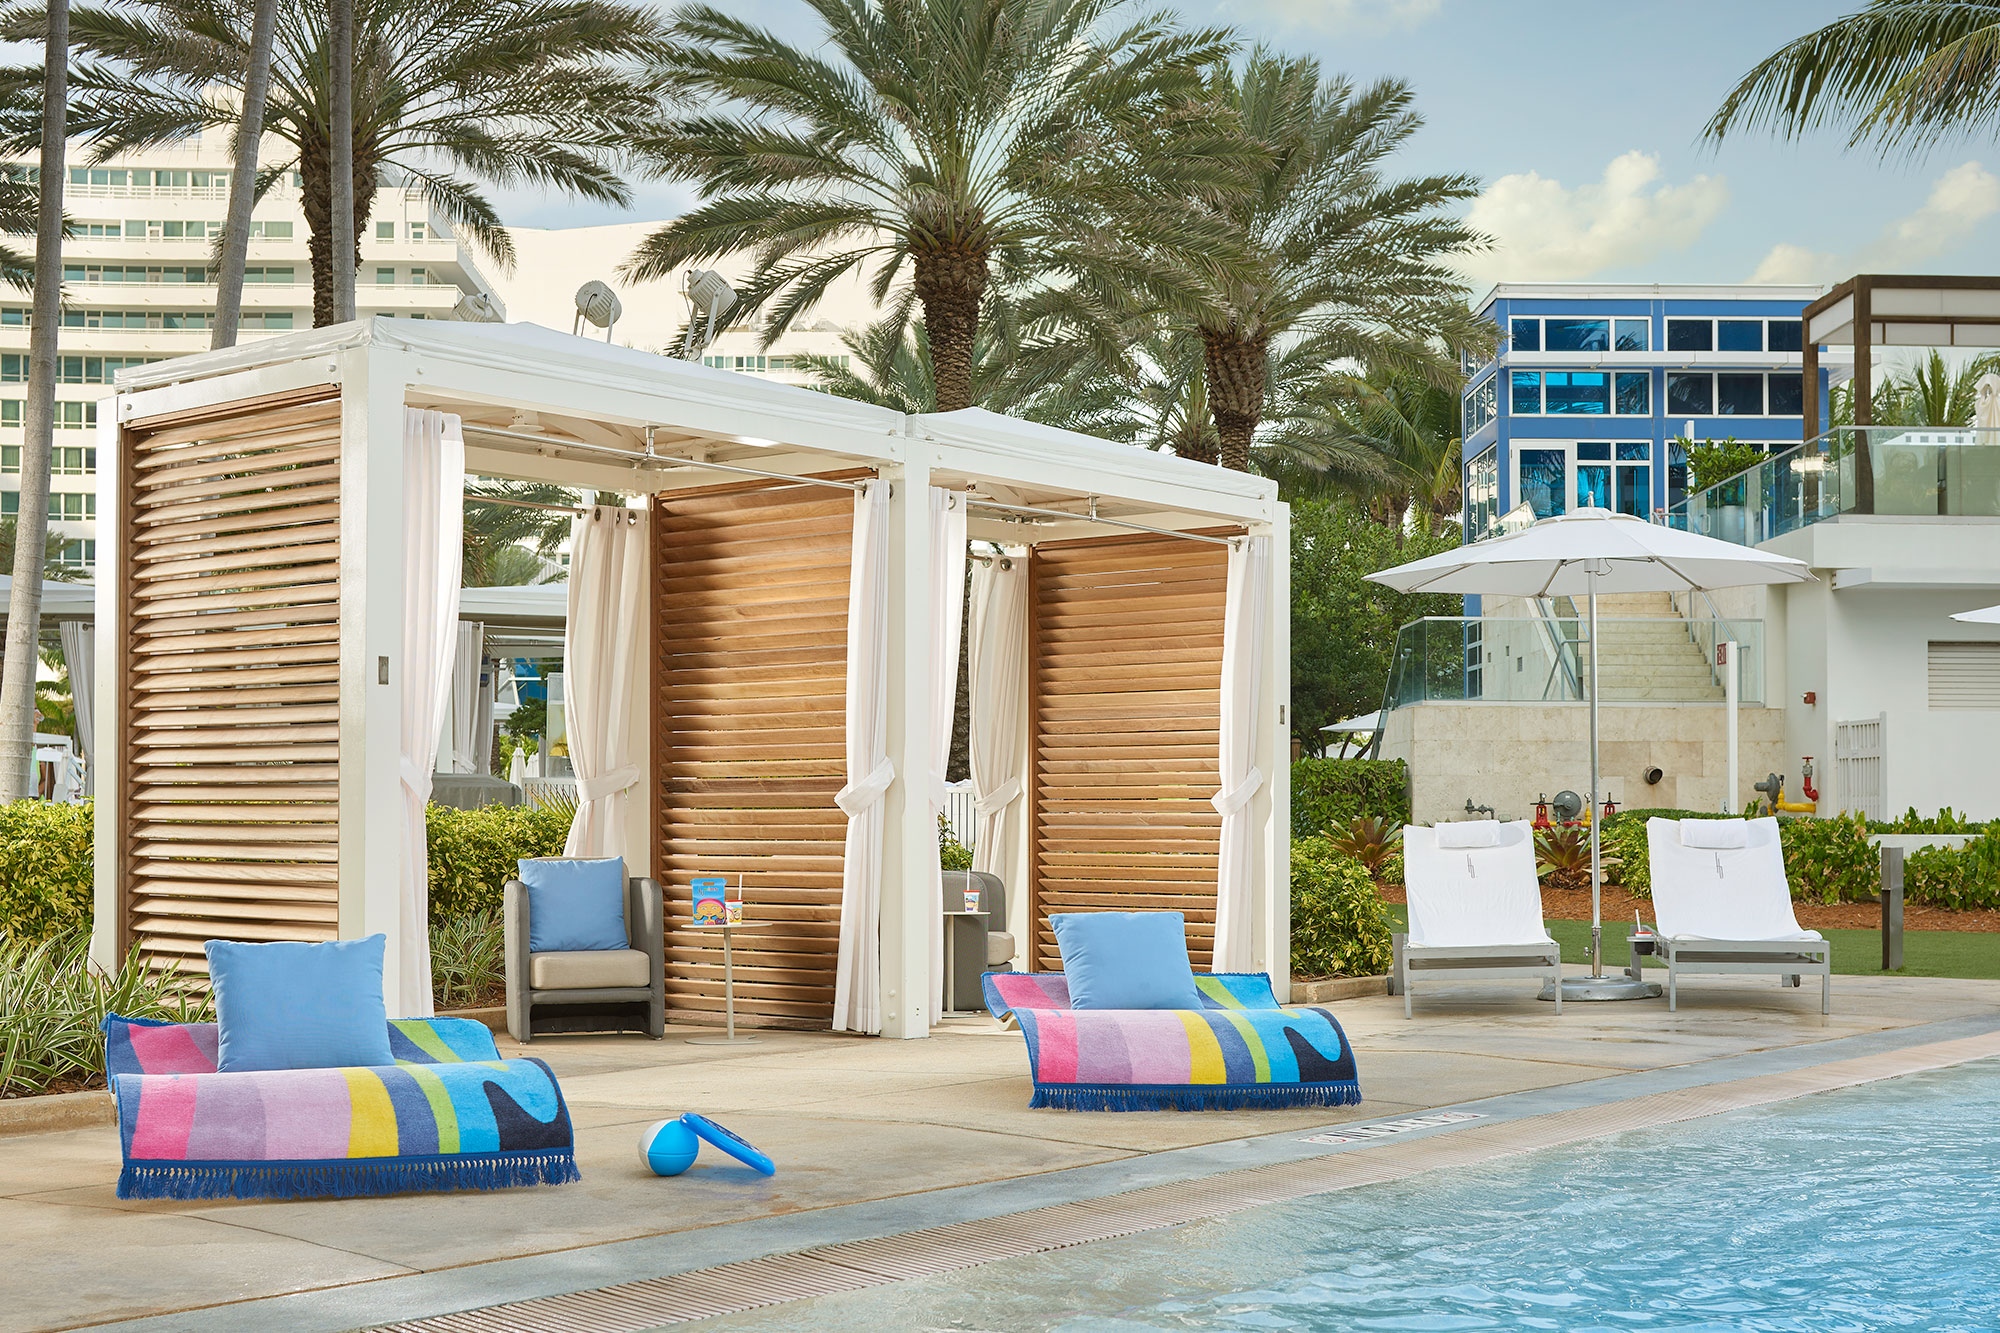 A poolside cabana at FontainebleauMiami Beach with colorful seating and a tropical modern feel